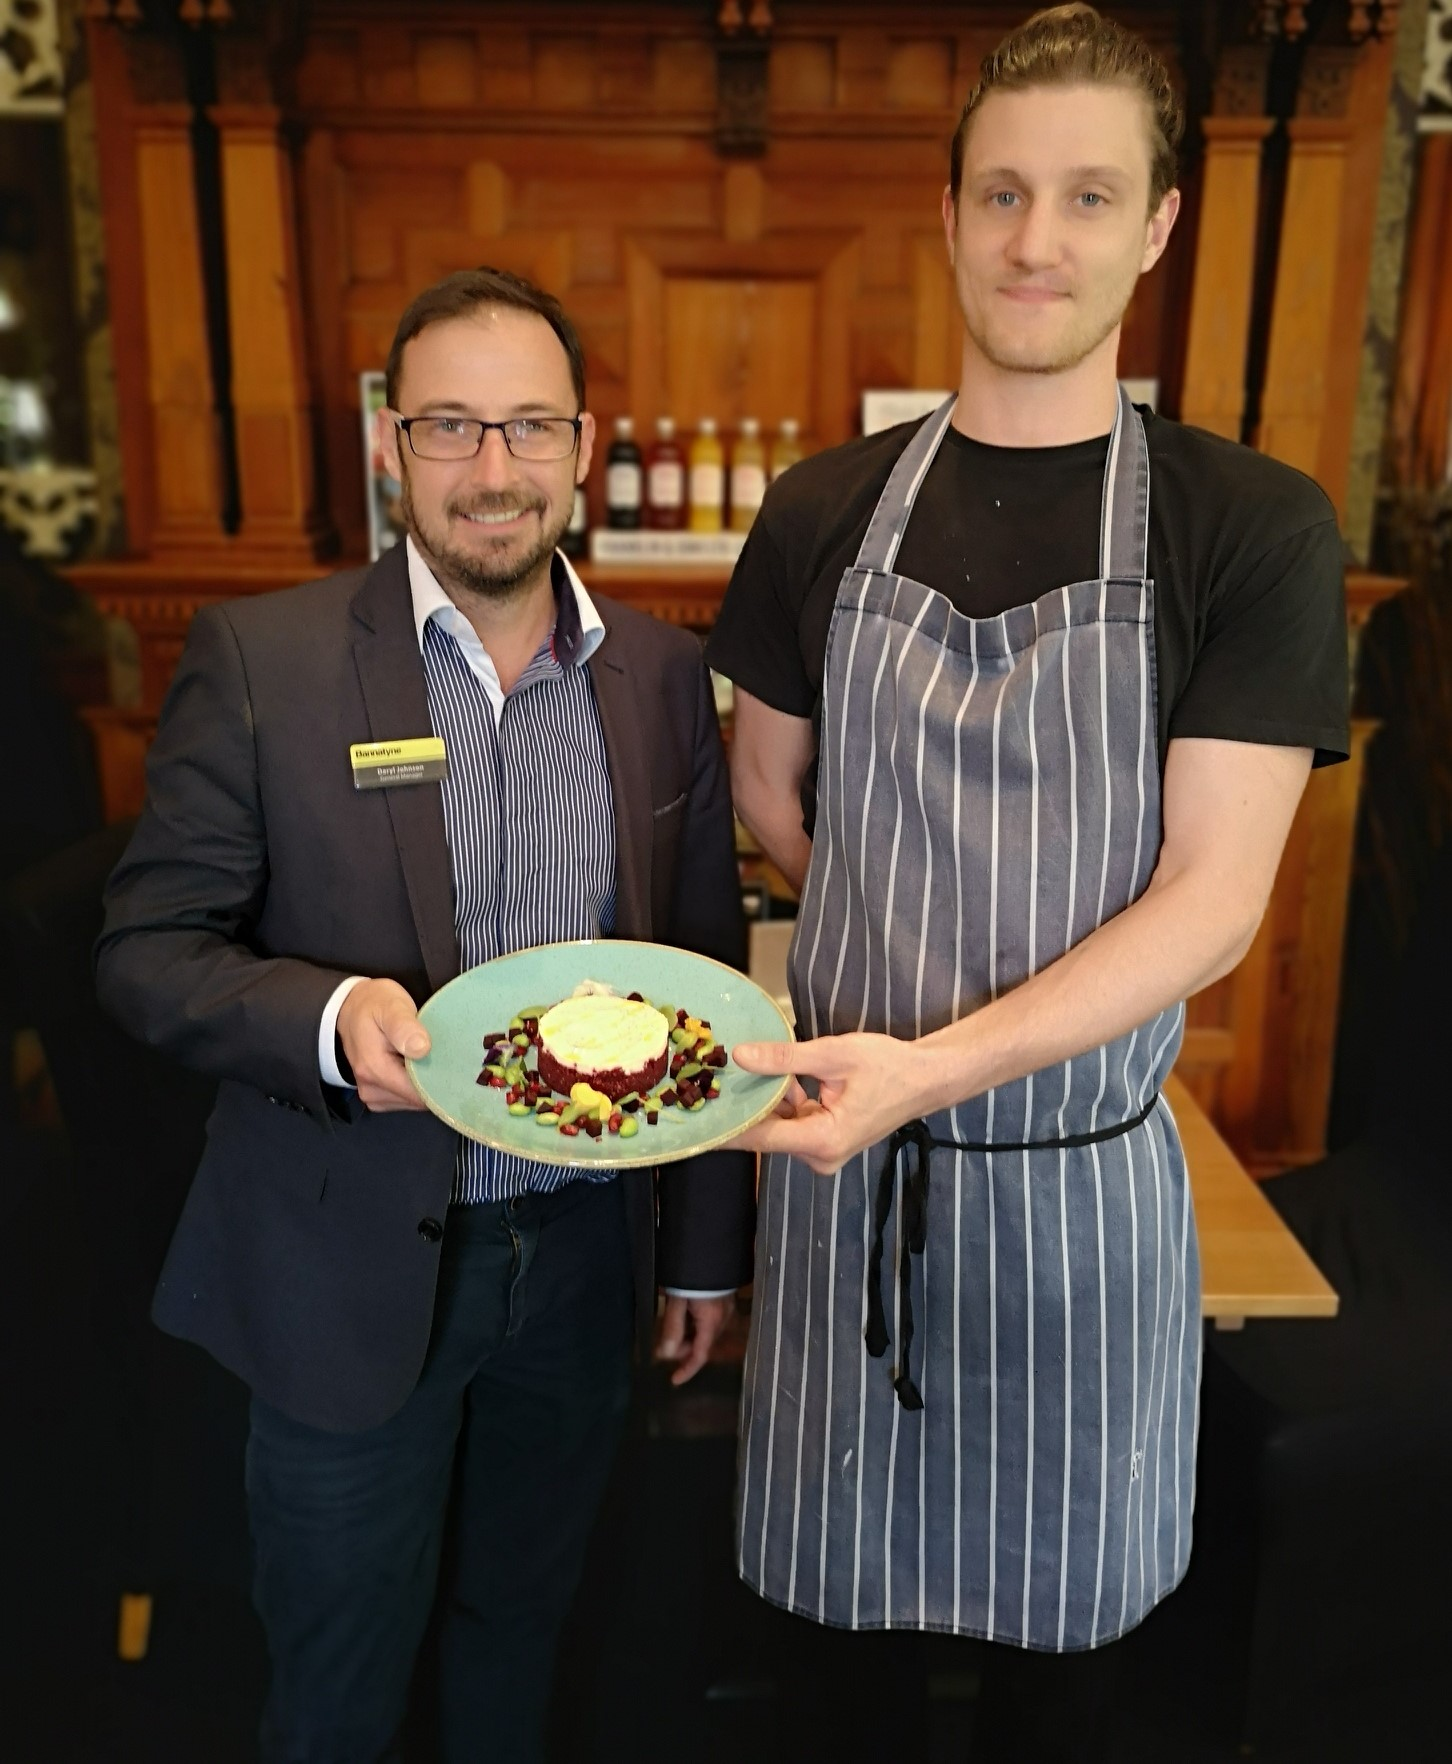 Daryl Johnson Resort Manager Bannatyne Health Club & Spa Bury St Edmunds with Chef Nicholas Hazelton